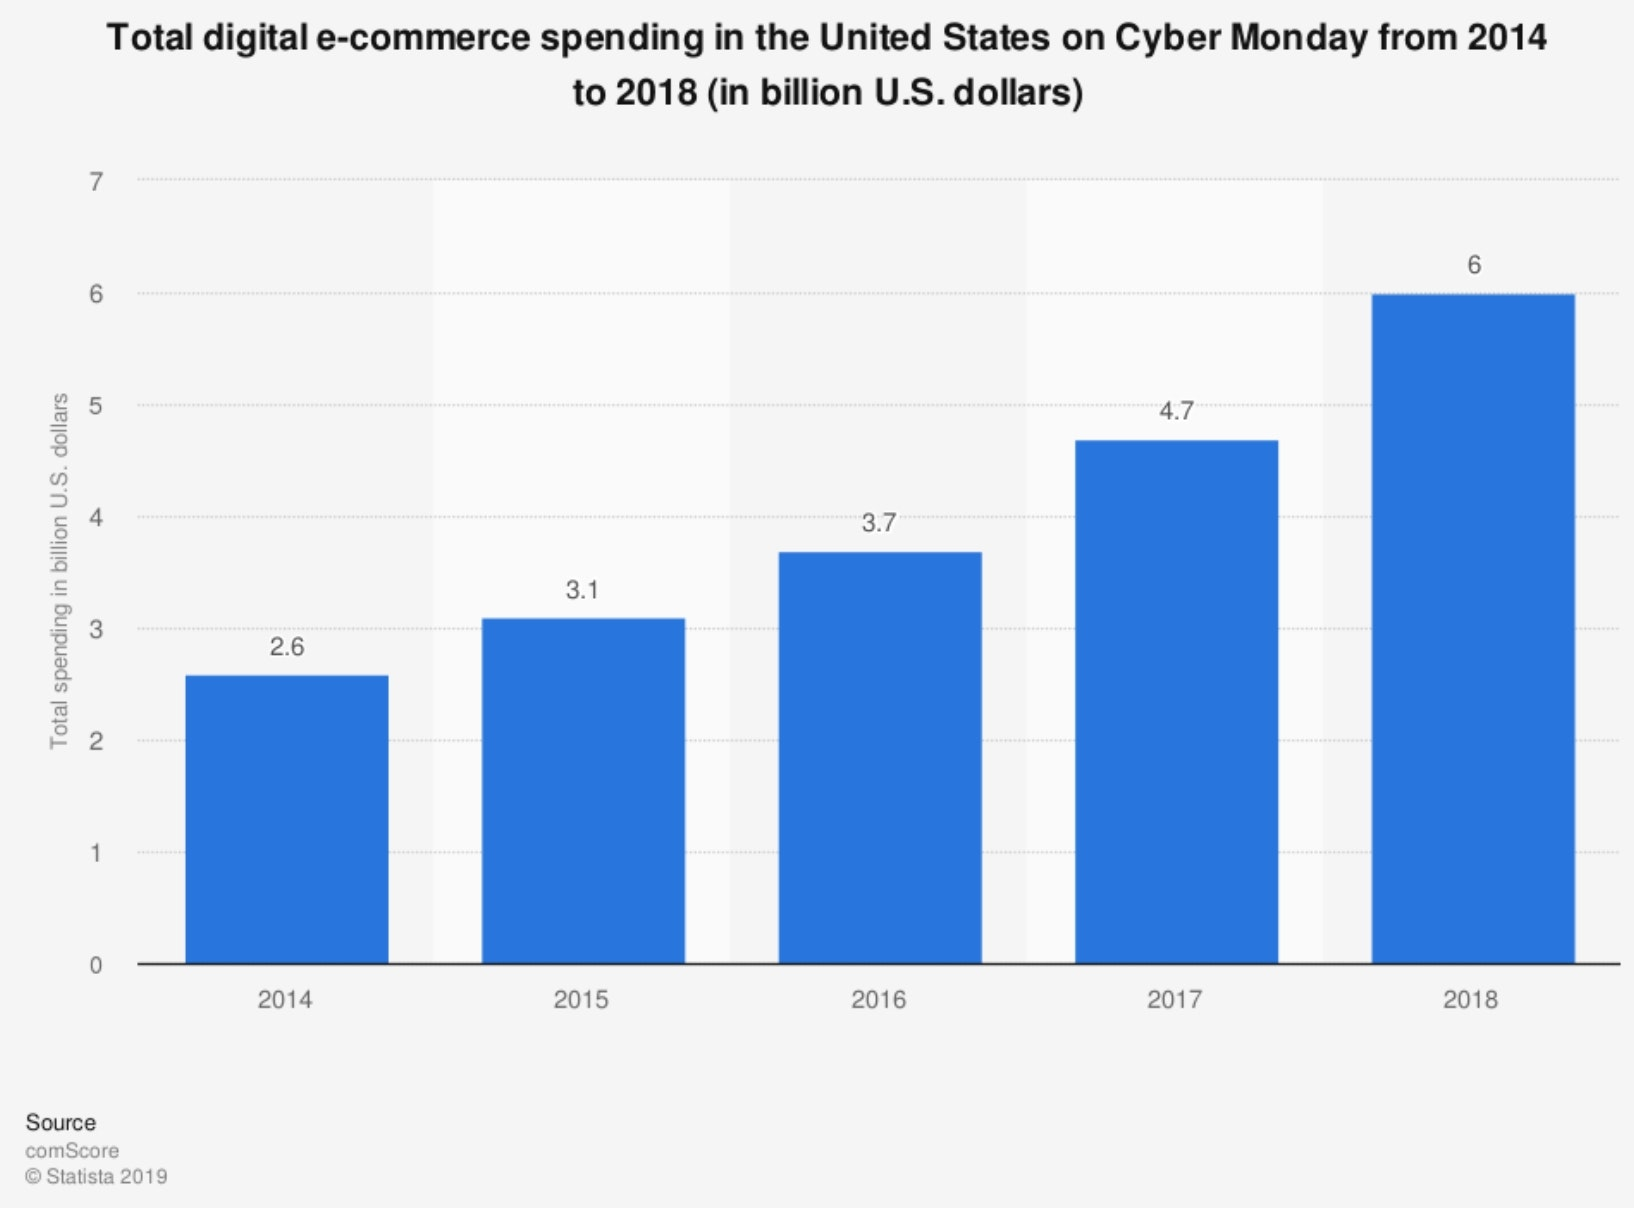 Statistia graph of Cyber Monday spending increasing from 2014-2018